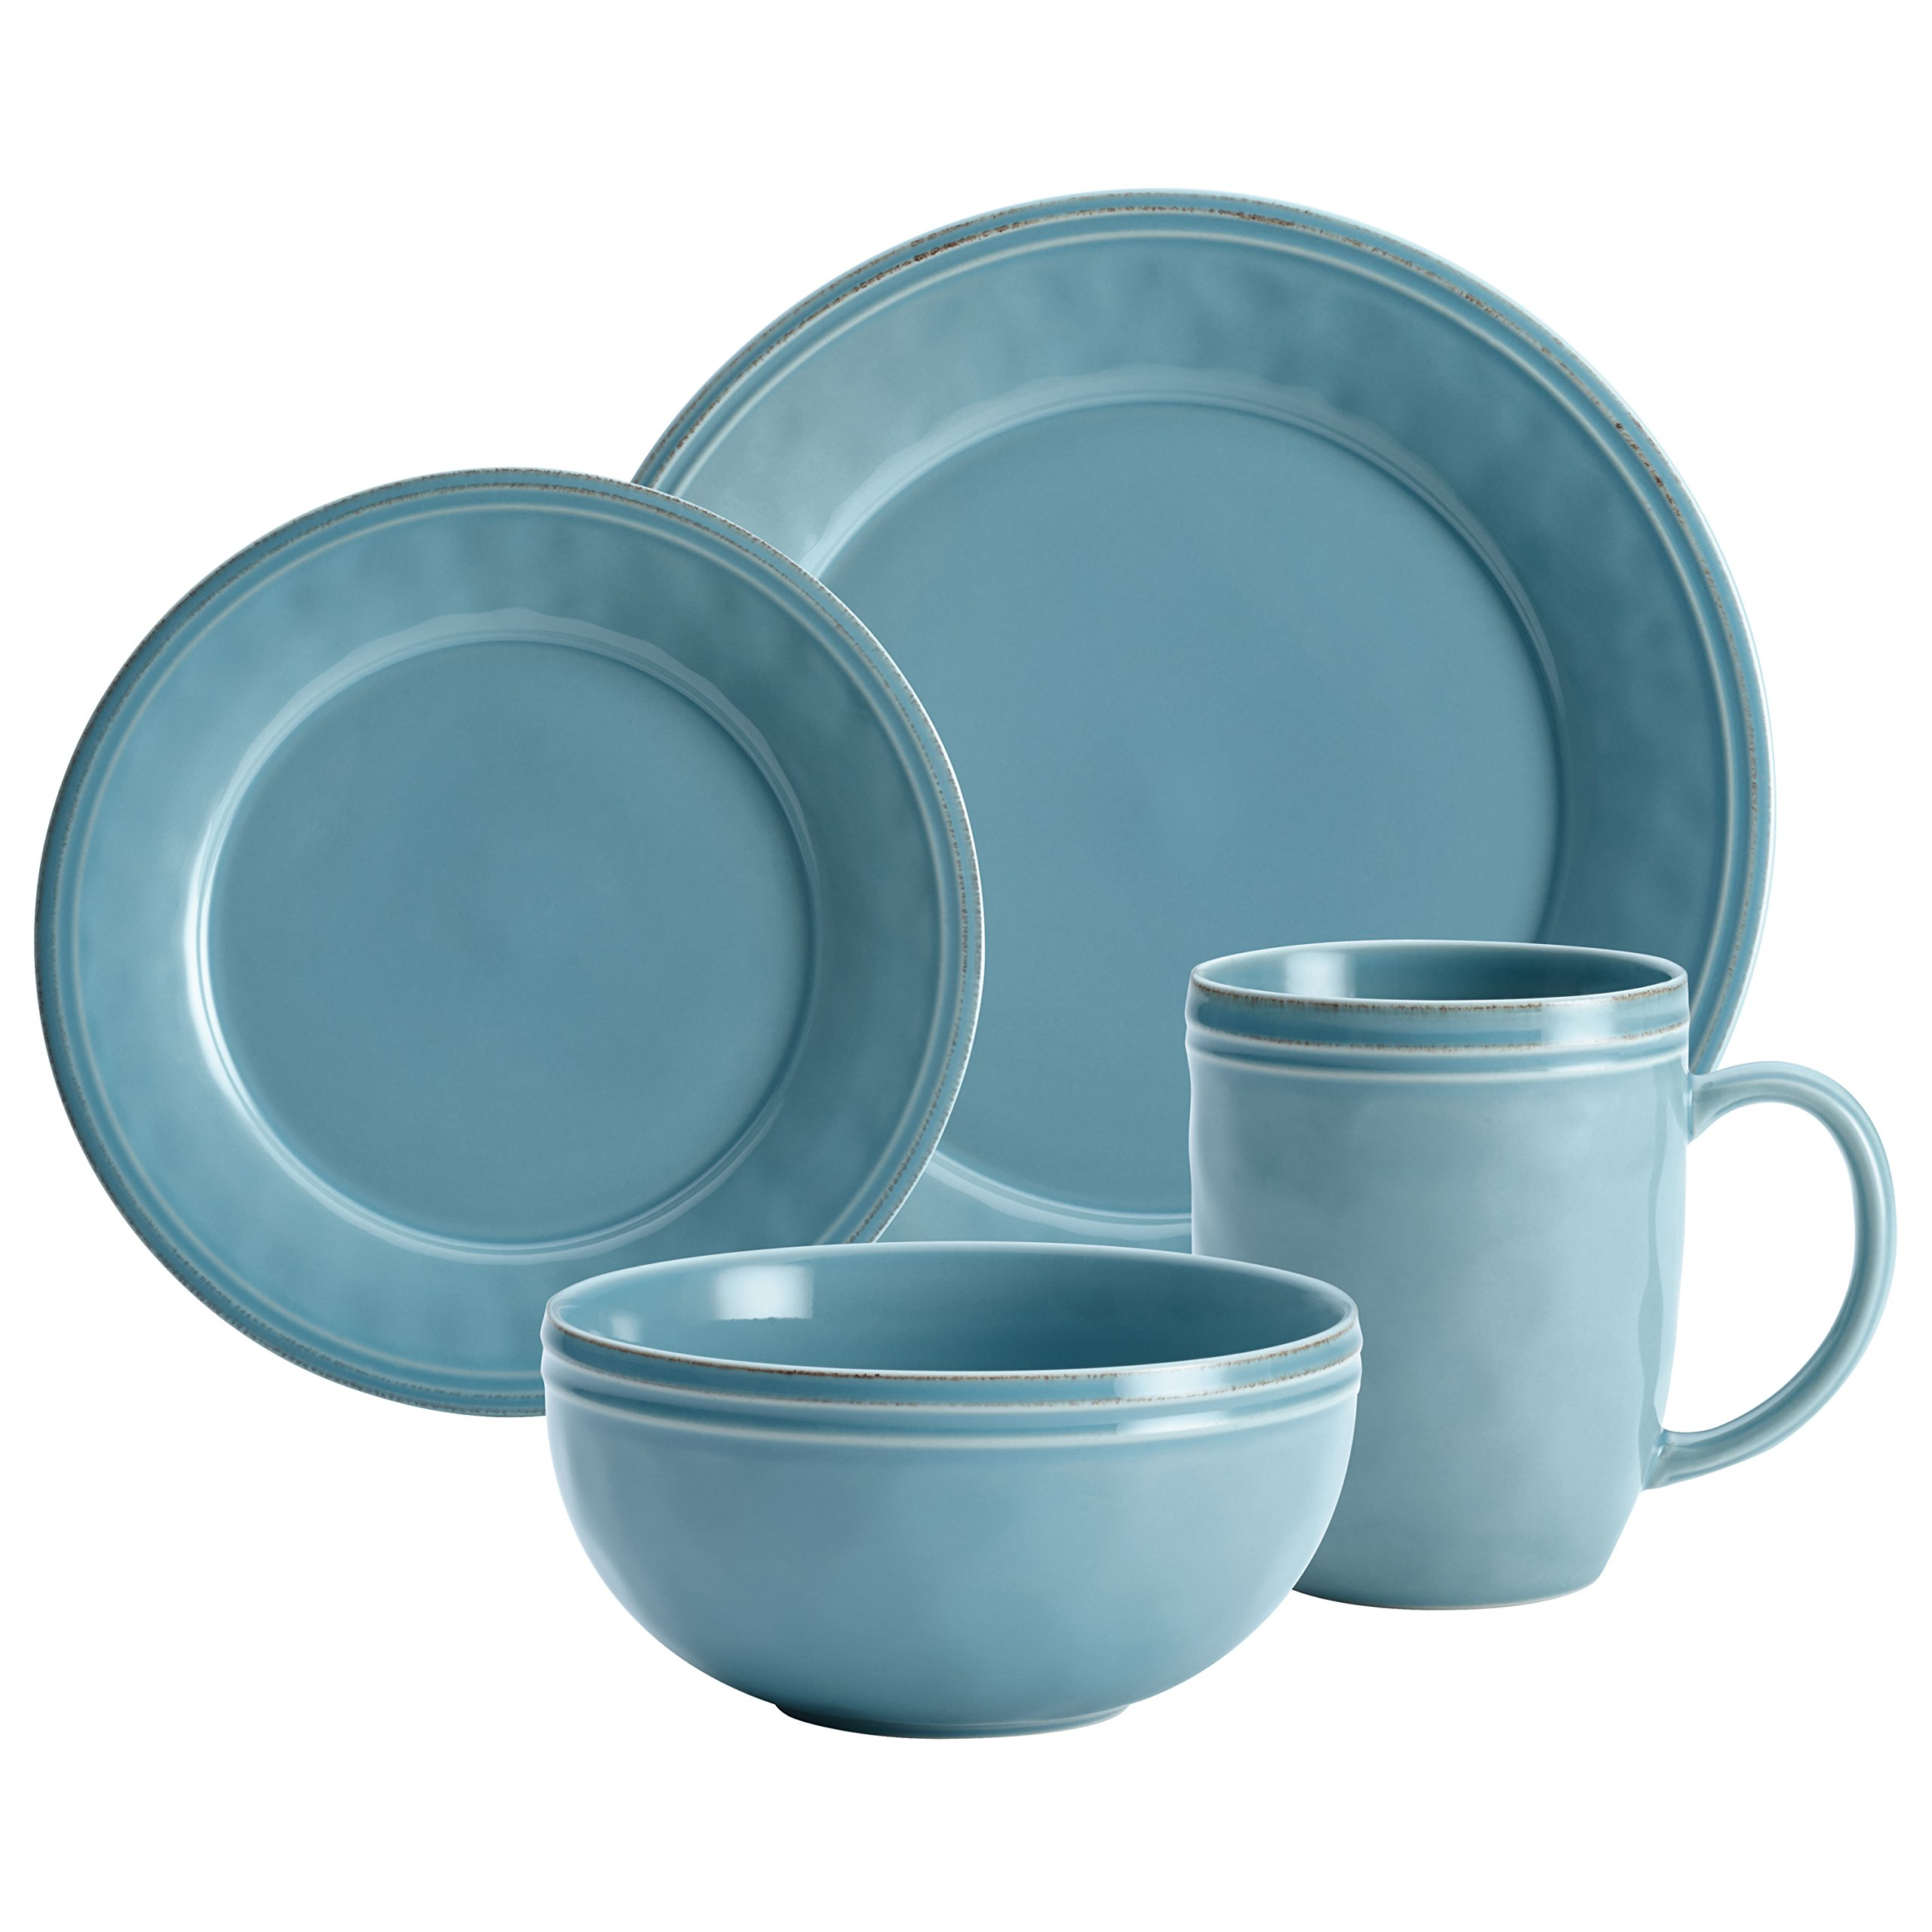 Rachael Ray Cucina Dinnerware 16-Piece Stoneware Dinnerware Set, Agave Blue by Rachael Ray (Image #5)